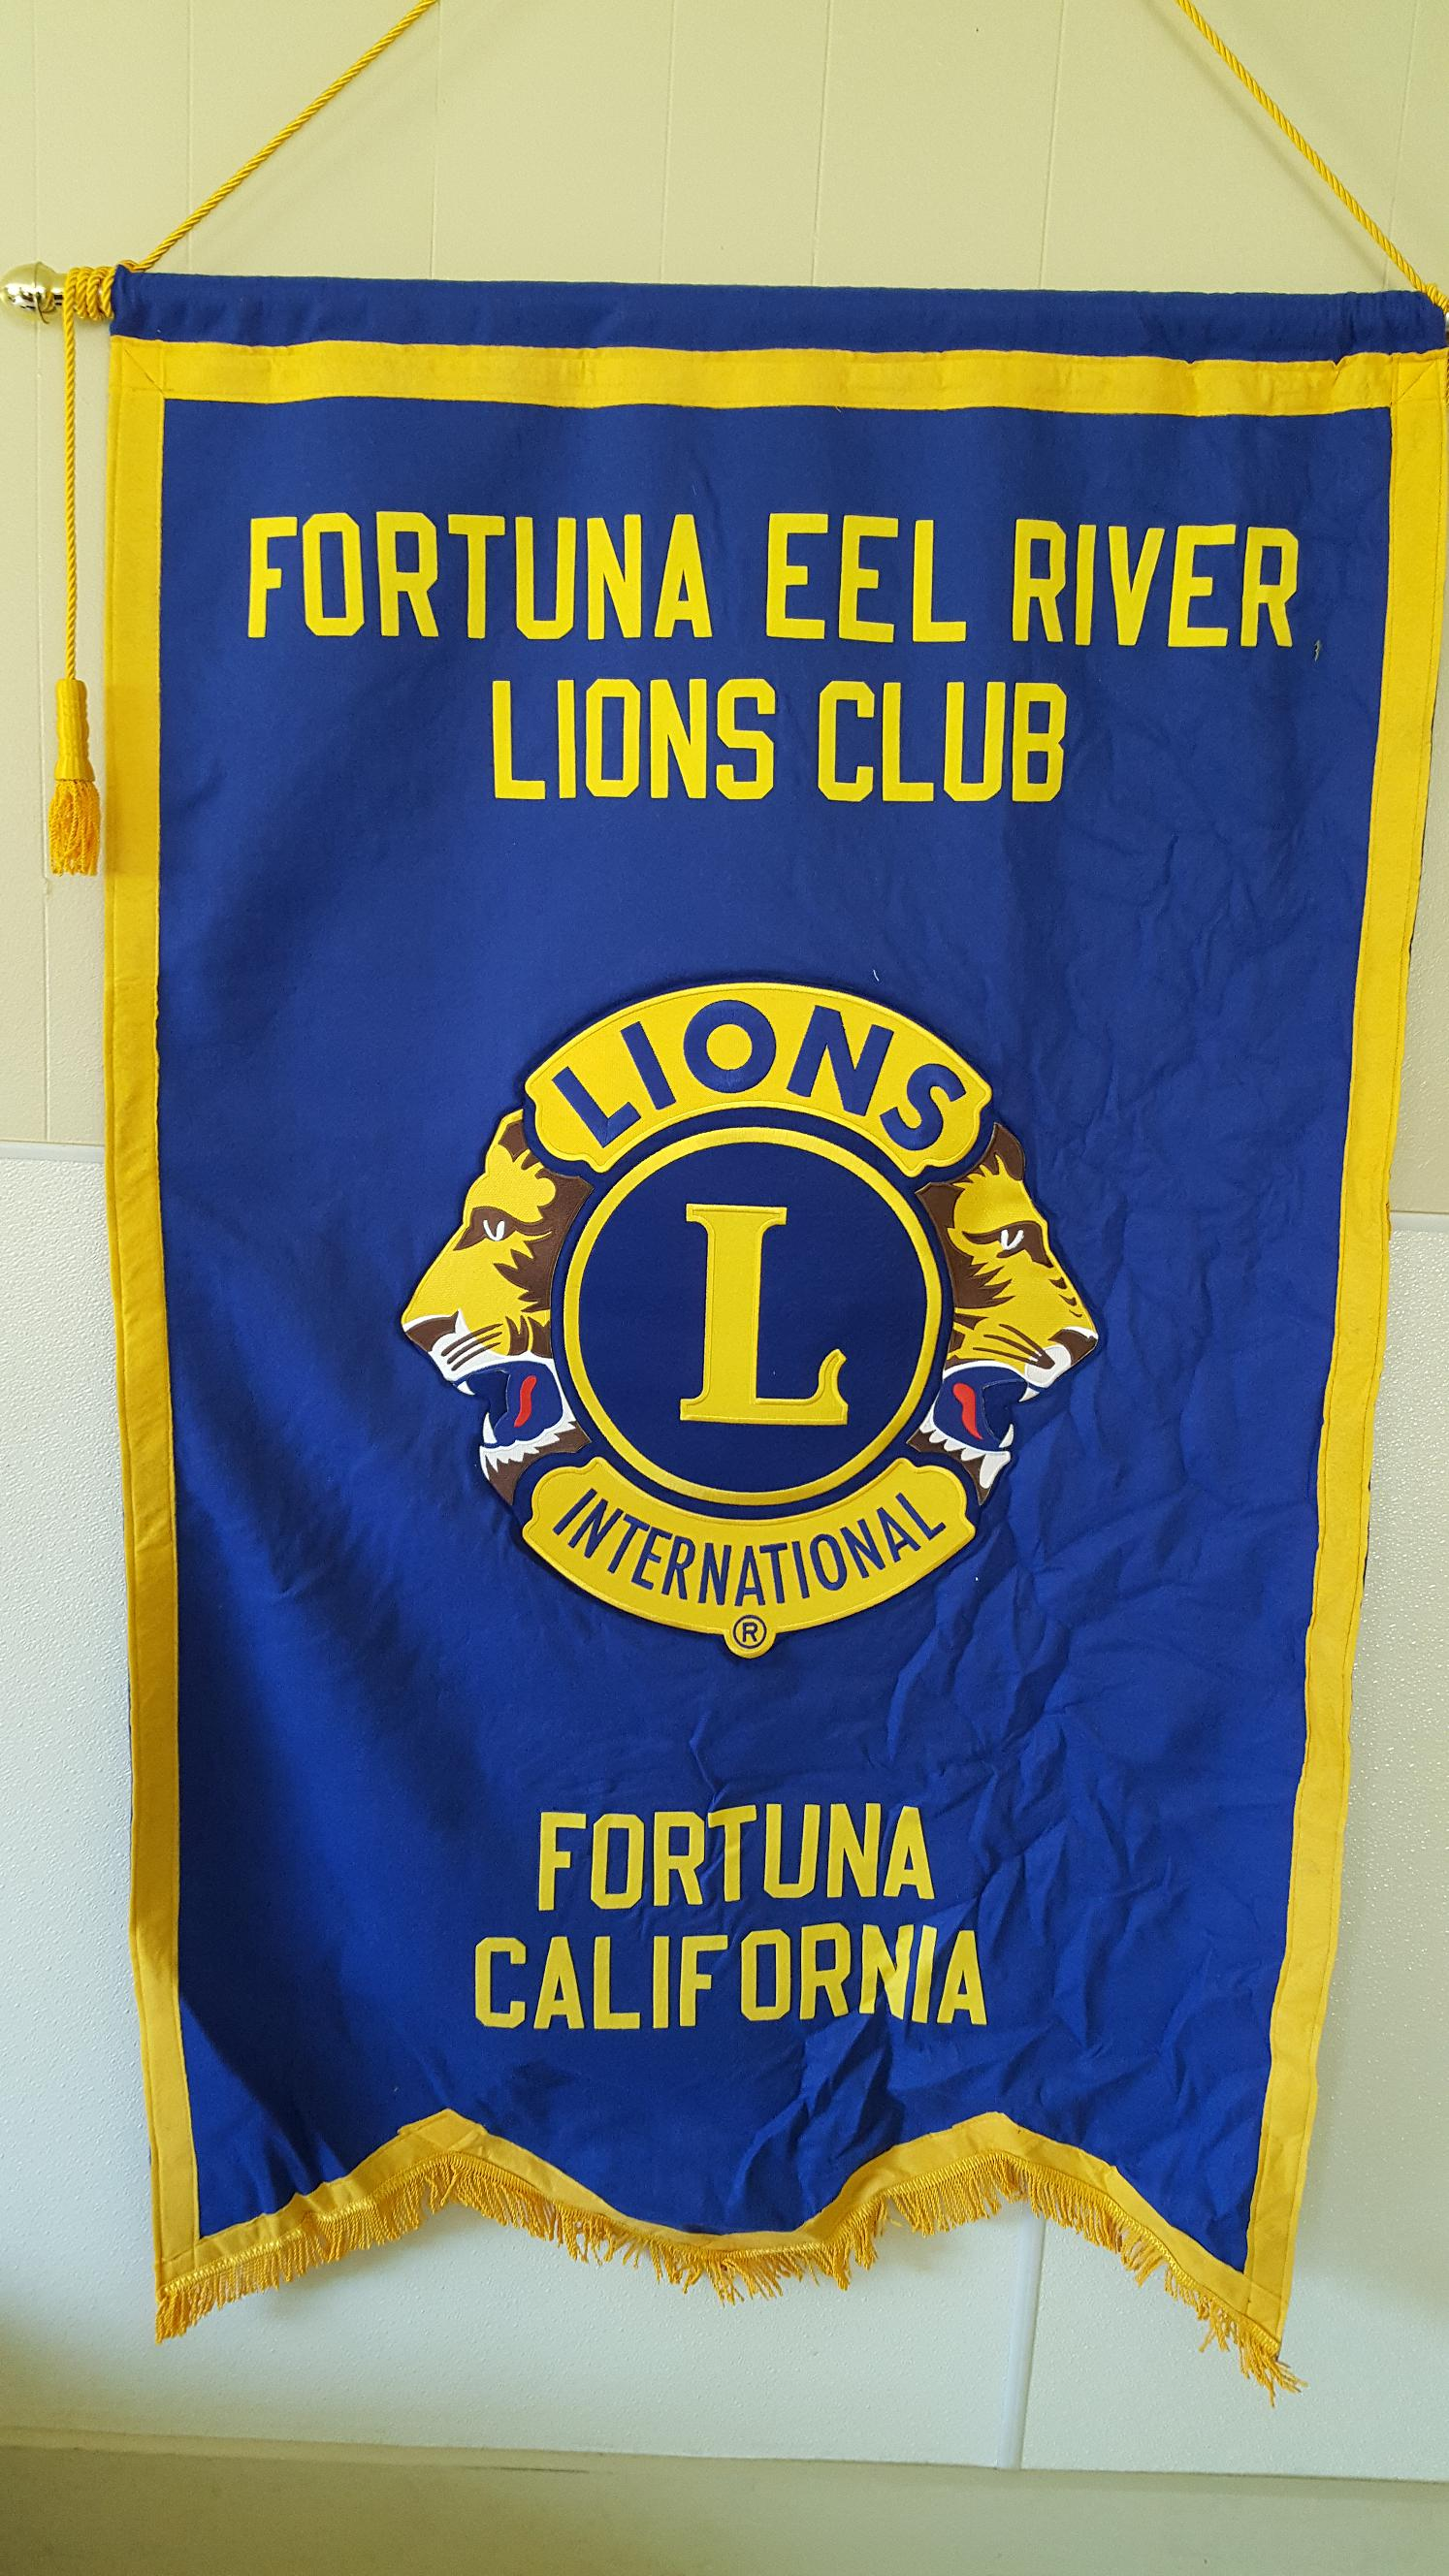 Fortuna-Eel River Lions Club Banner